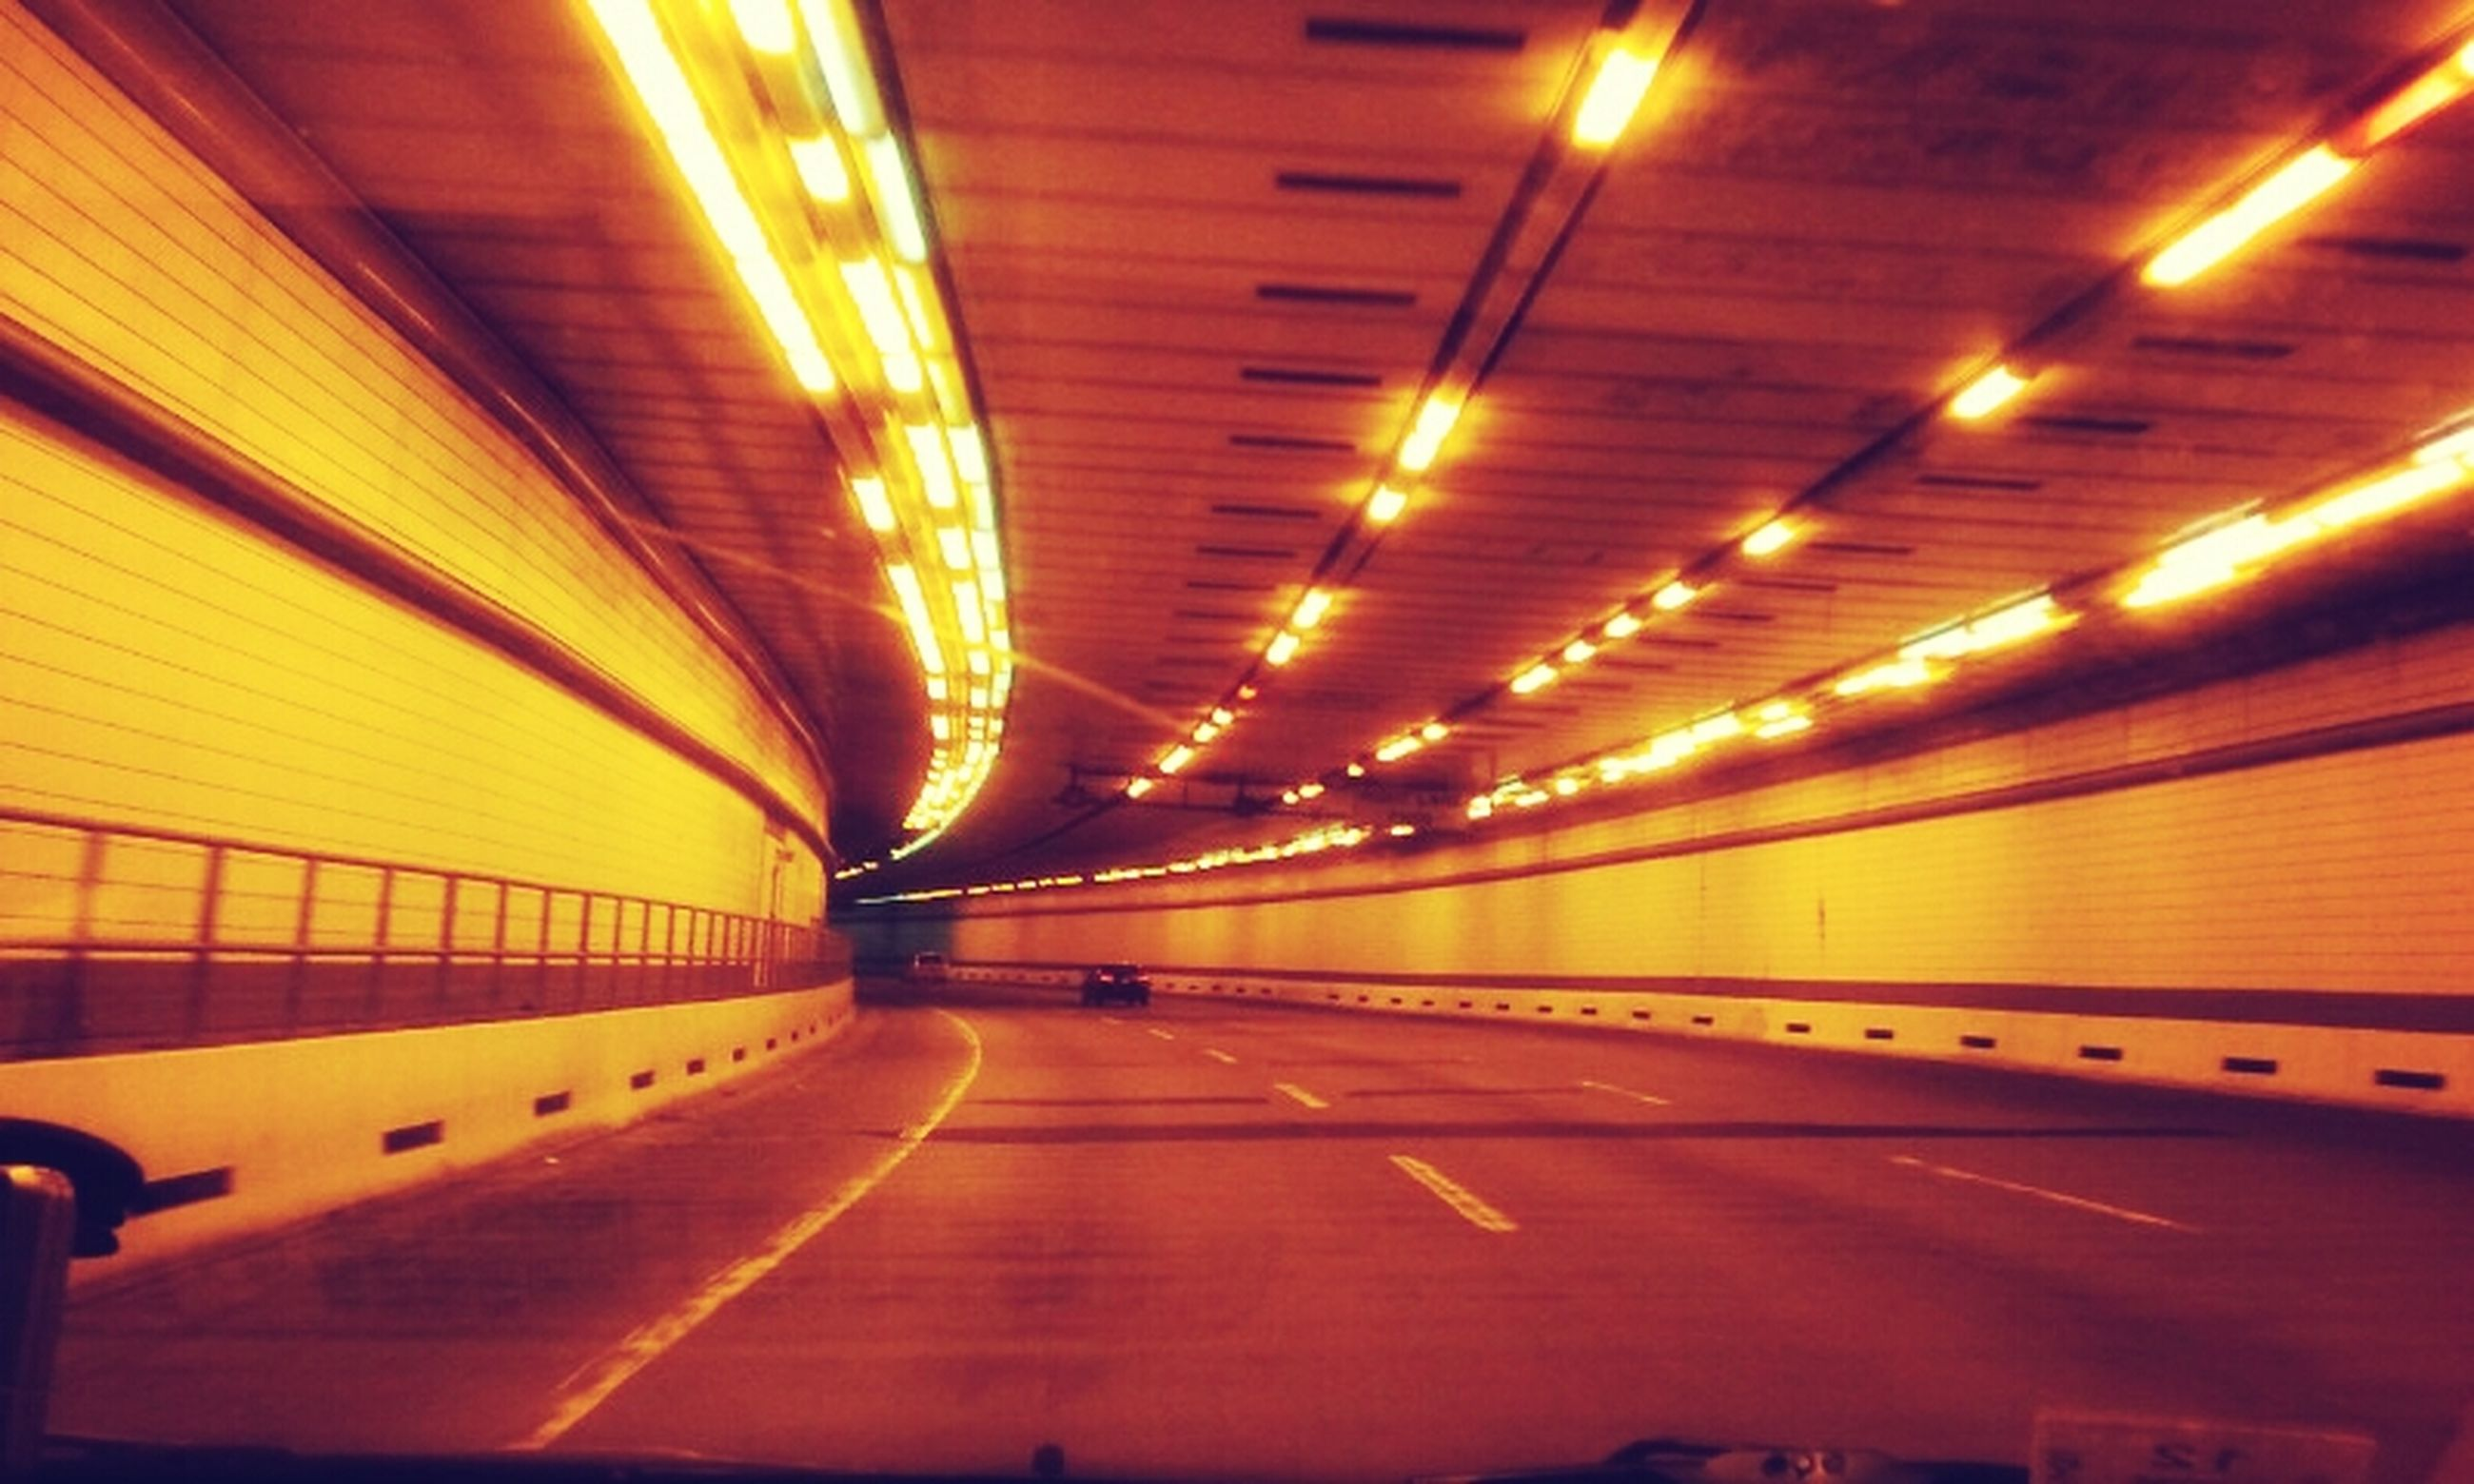 illuminated, indoors, the way forward, lighting equipment, transportation, diminishing perspective, night, architecture, ceiling, built structure, vanishing point, light - natural phenomenon, tunnel, empty, glowing, yellow, pattern, electric light, no people, orange color